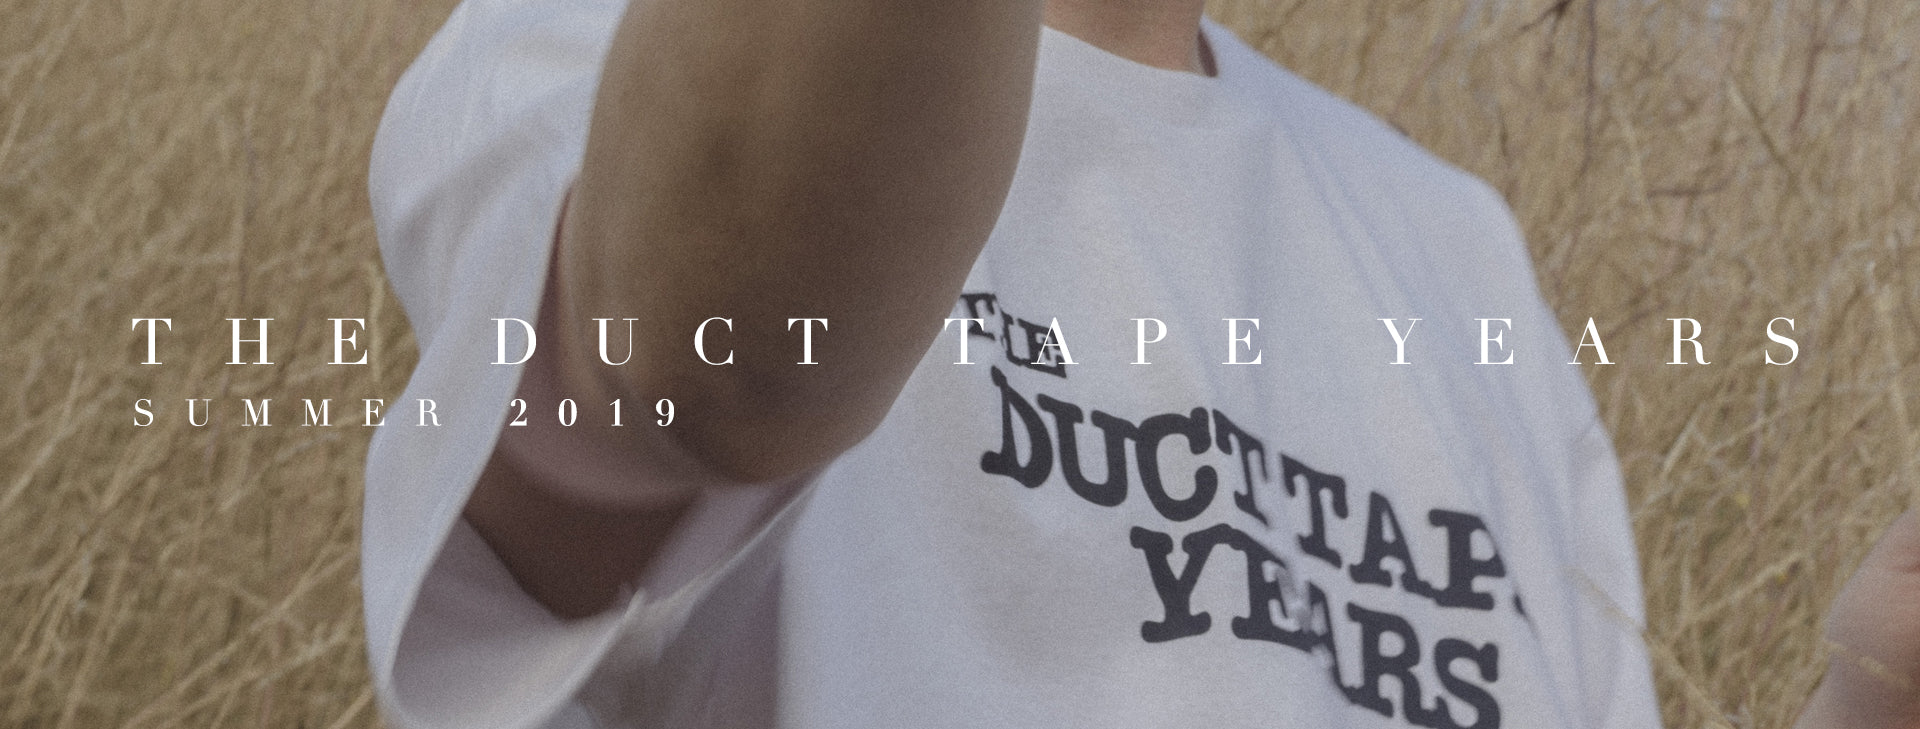 The Duct Tape Years Summer 2019